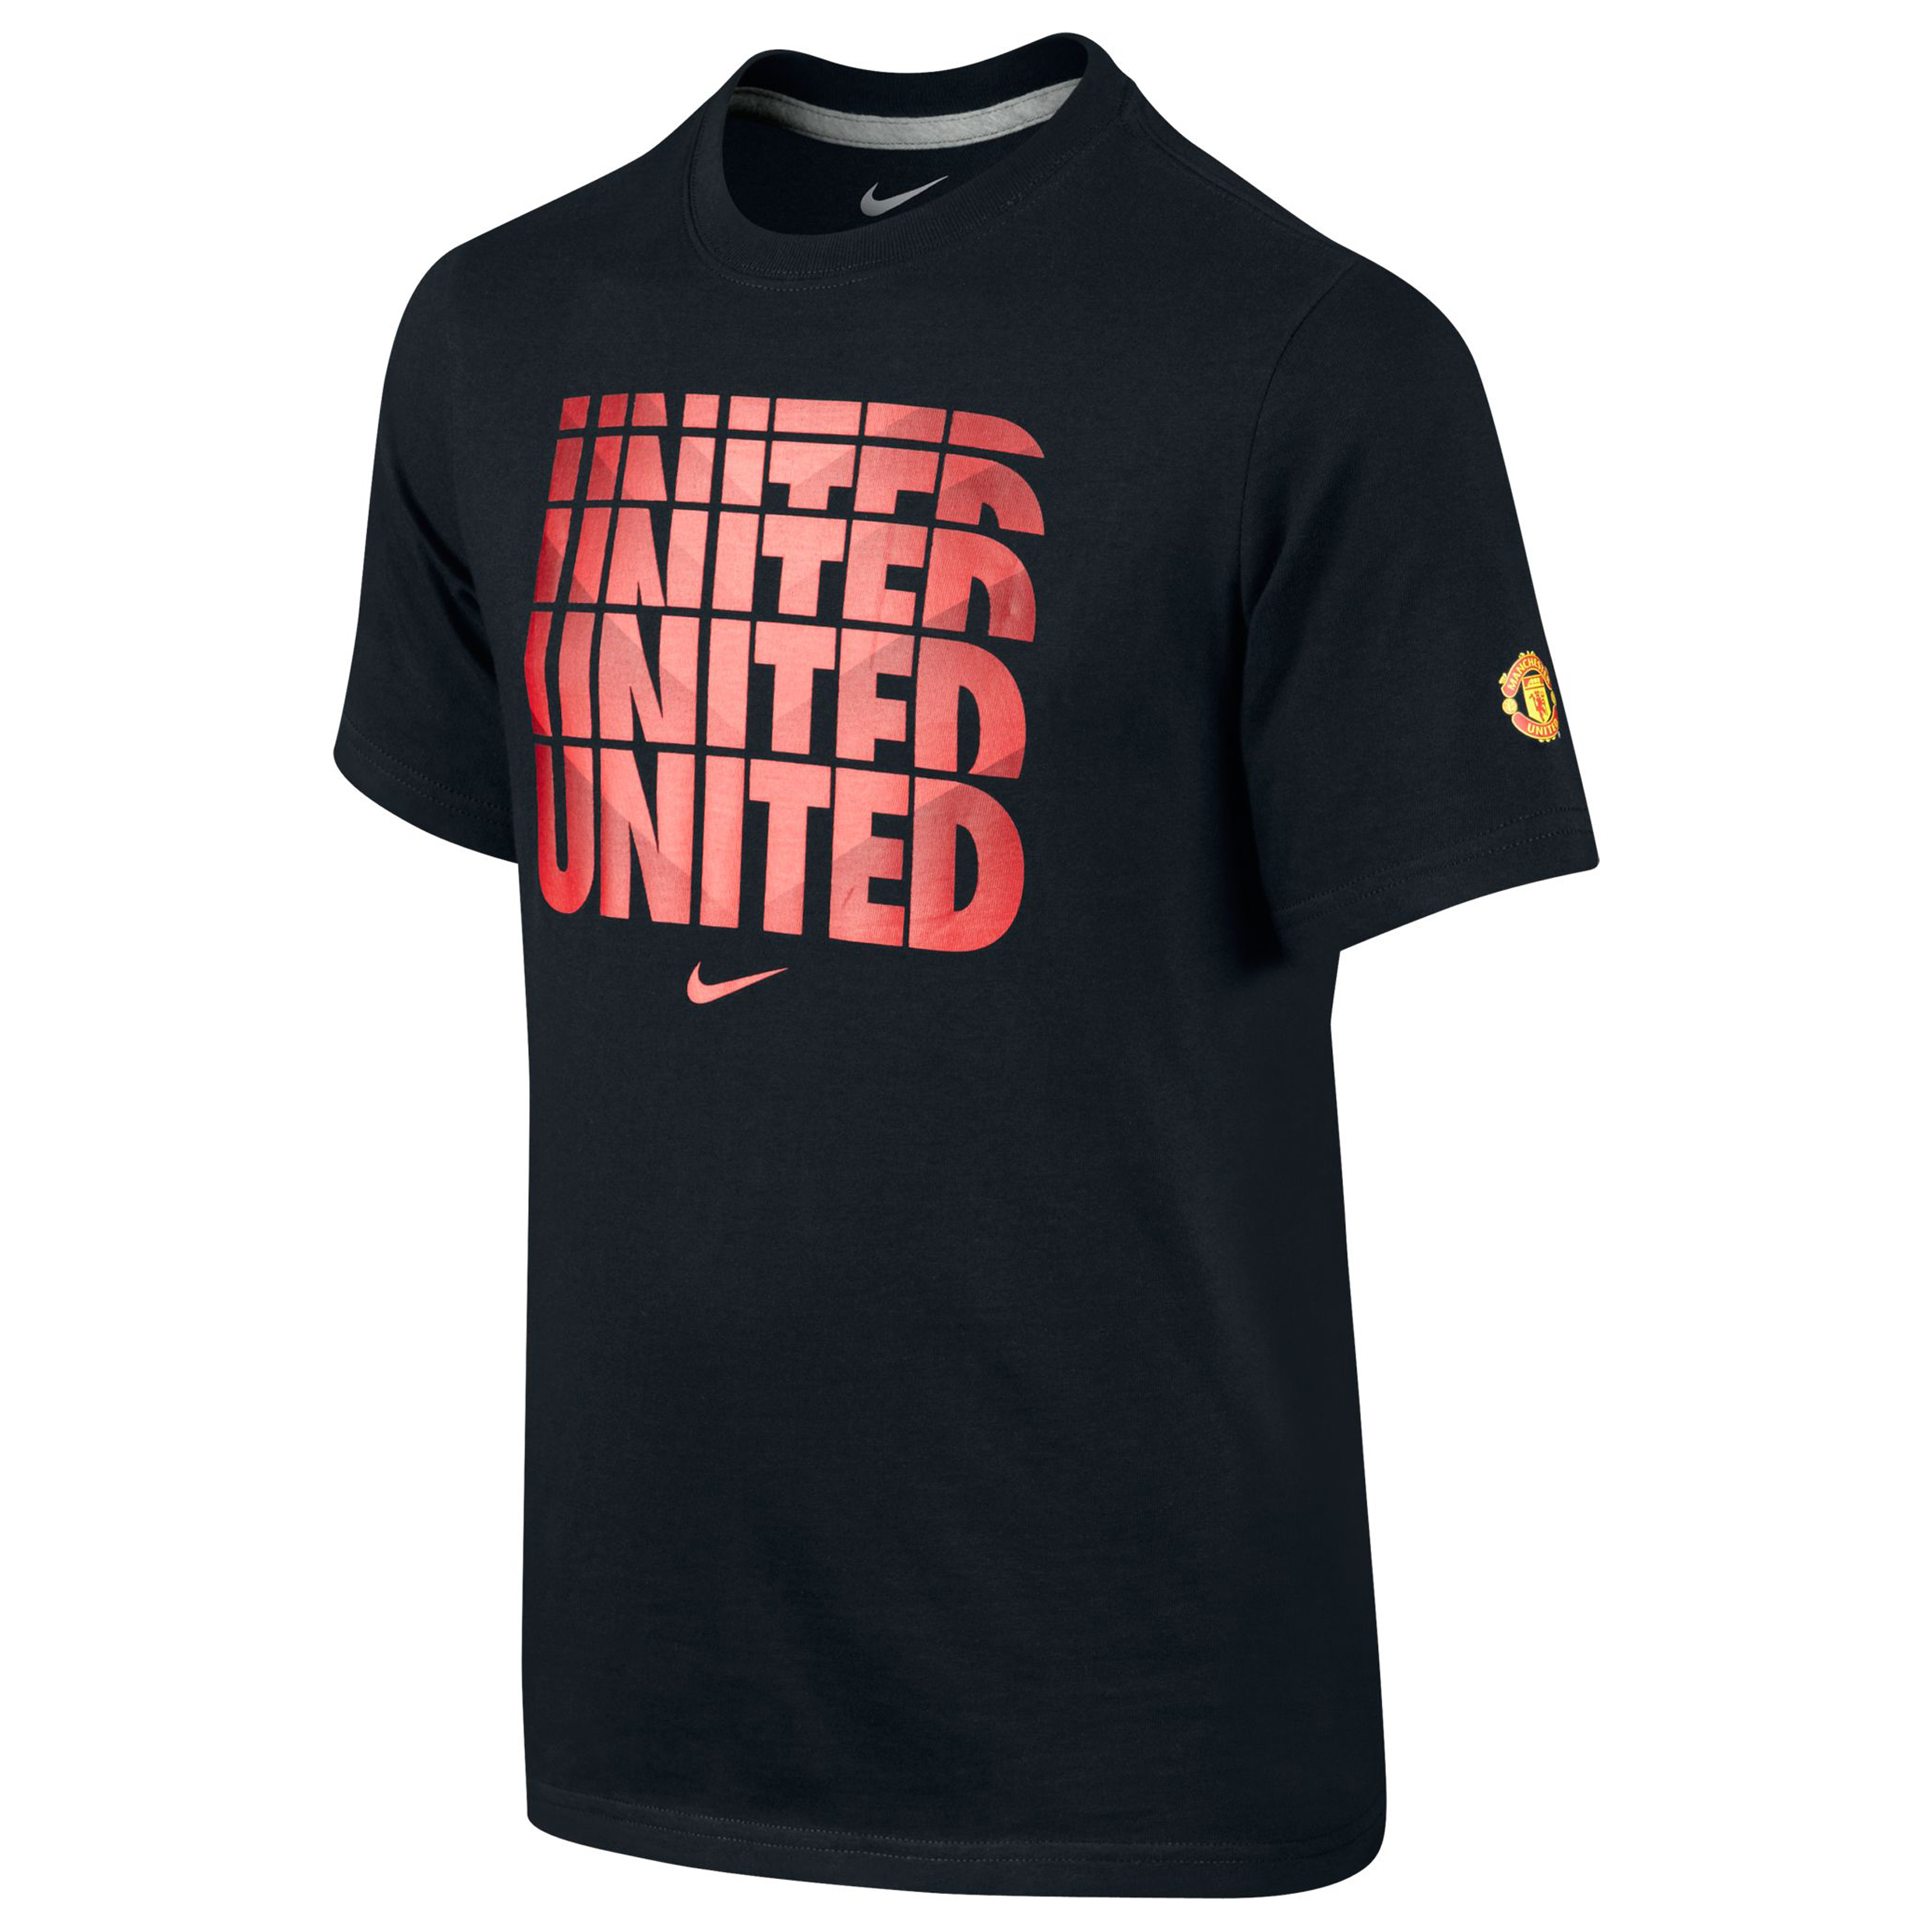 Manchester United Core Type T-Shirt - Kids Black